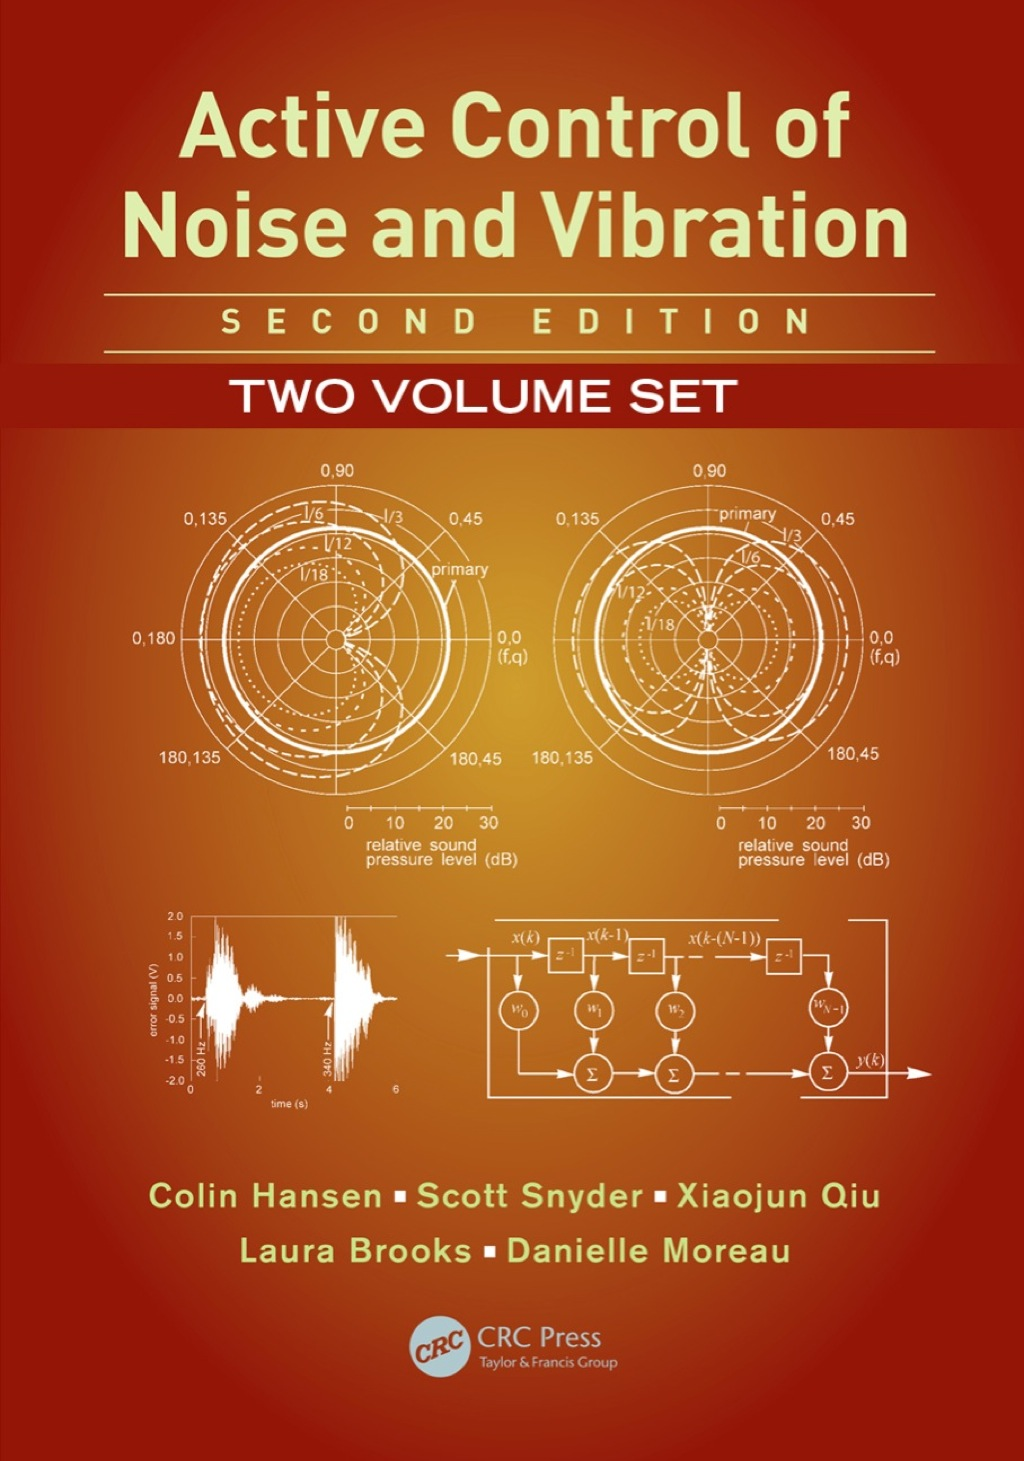 Active Control of Noise and Vibration, Second Edition (ebook) eBooks